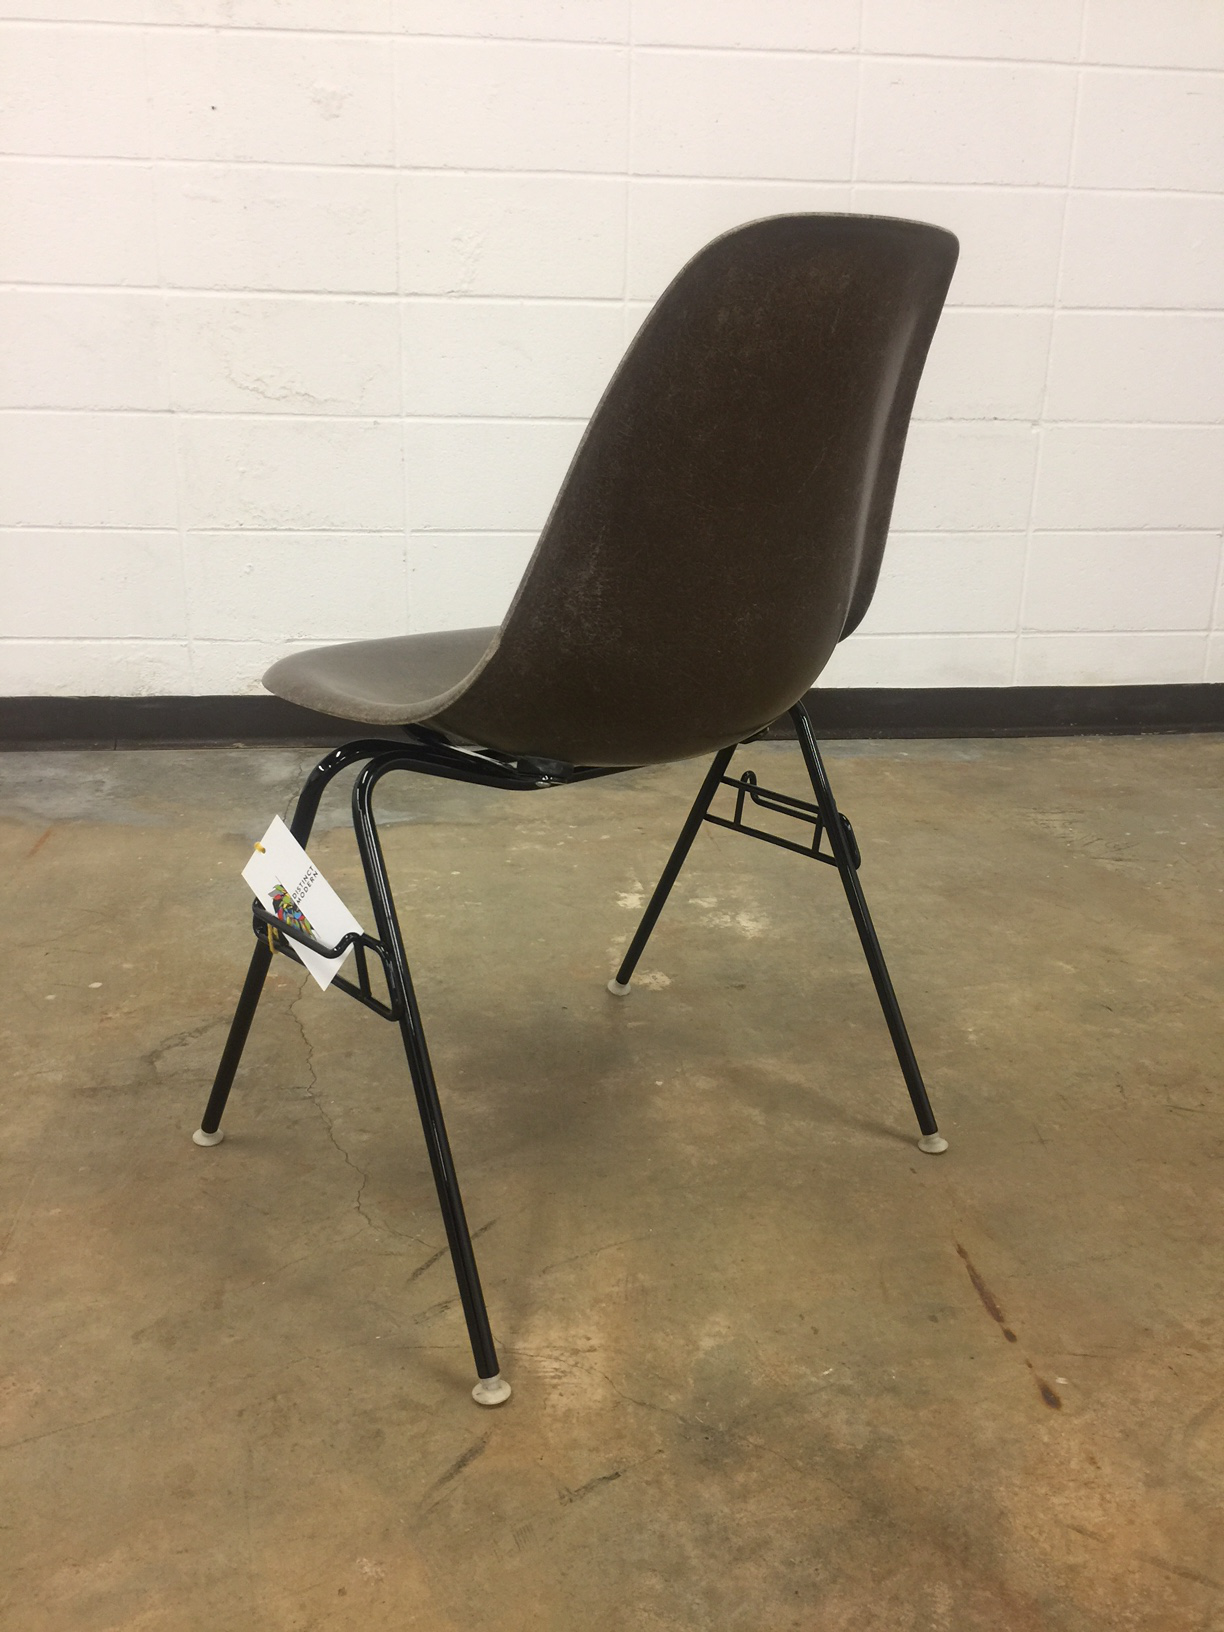 Superior Eames For Herman Miller Seal Brown Fiberglass Shell Chair   Image 4 Of 8